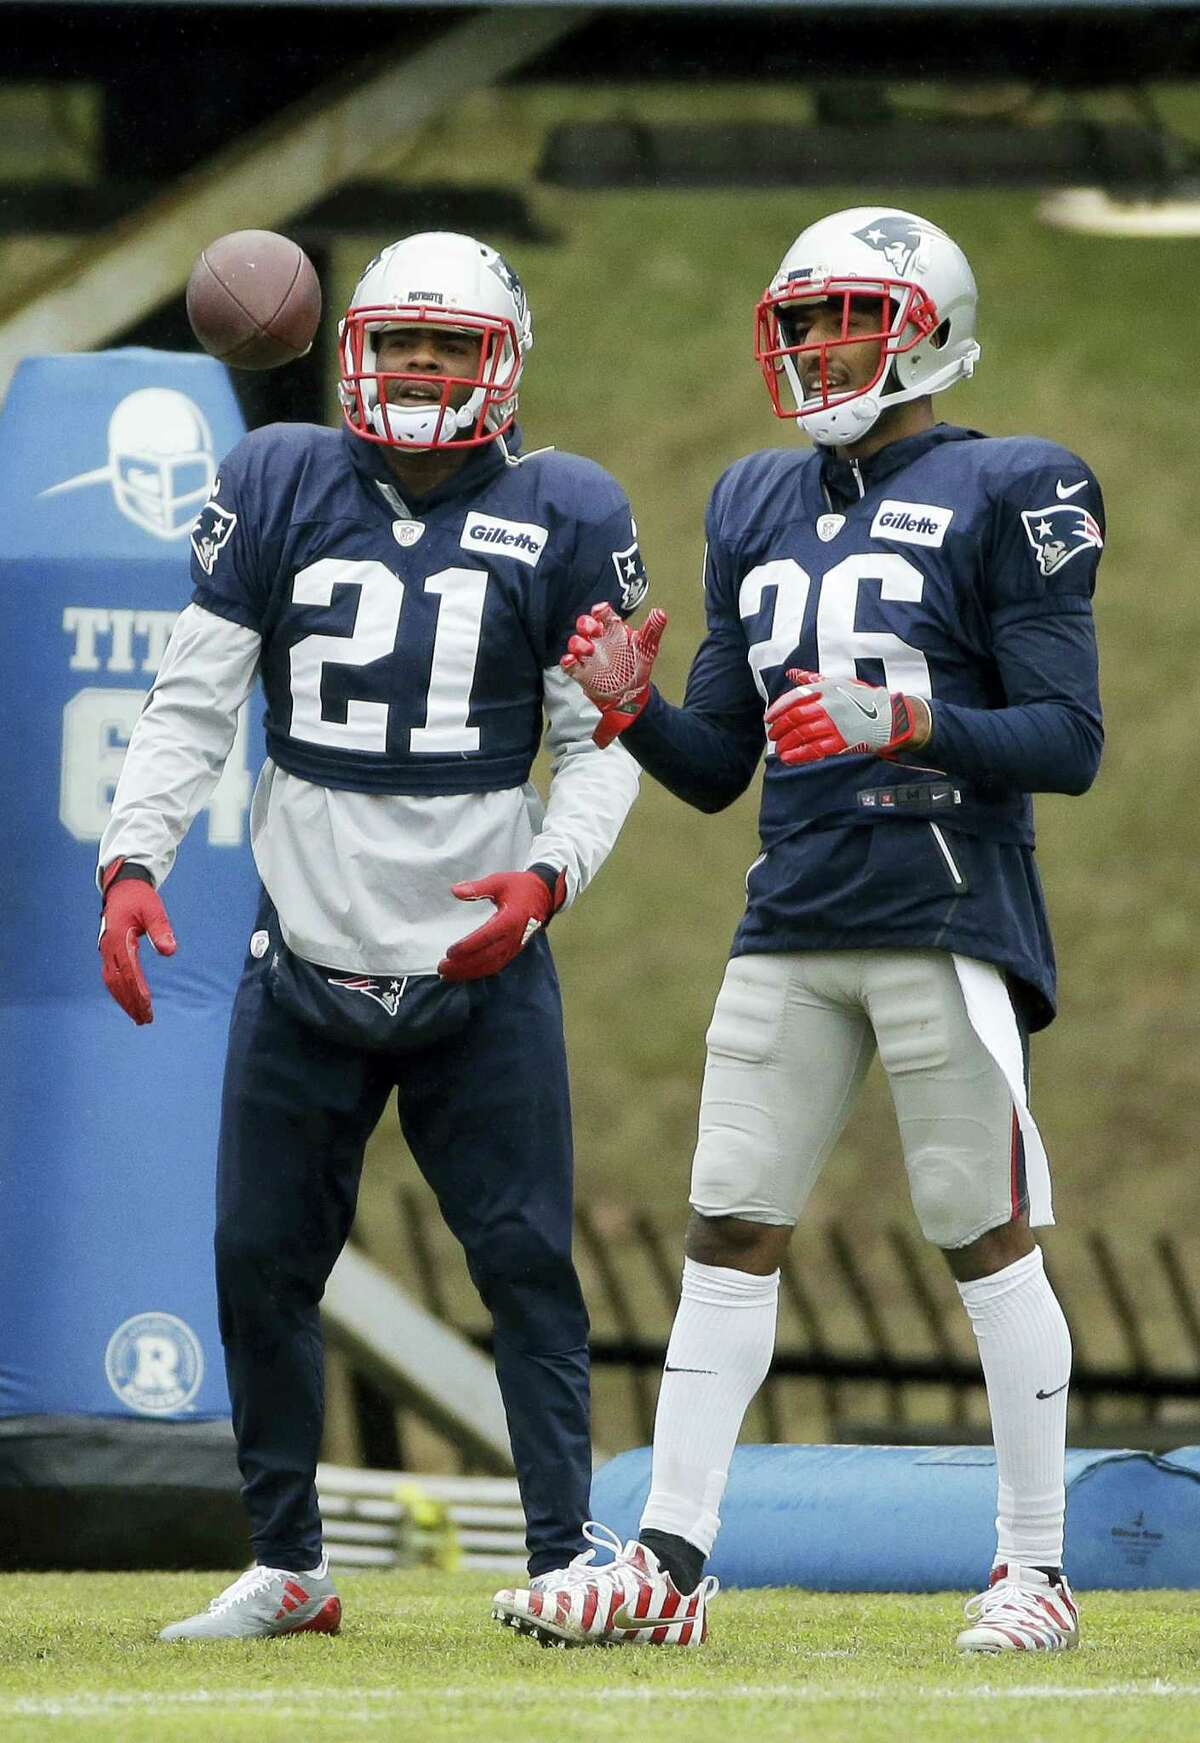 Patriots cornerbacks Malcolm Butler (21) and Logan Ryan (26) will look to slow the Falcons, who were the league's top scoring offense.